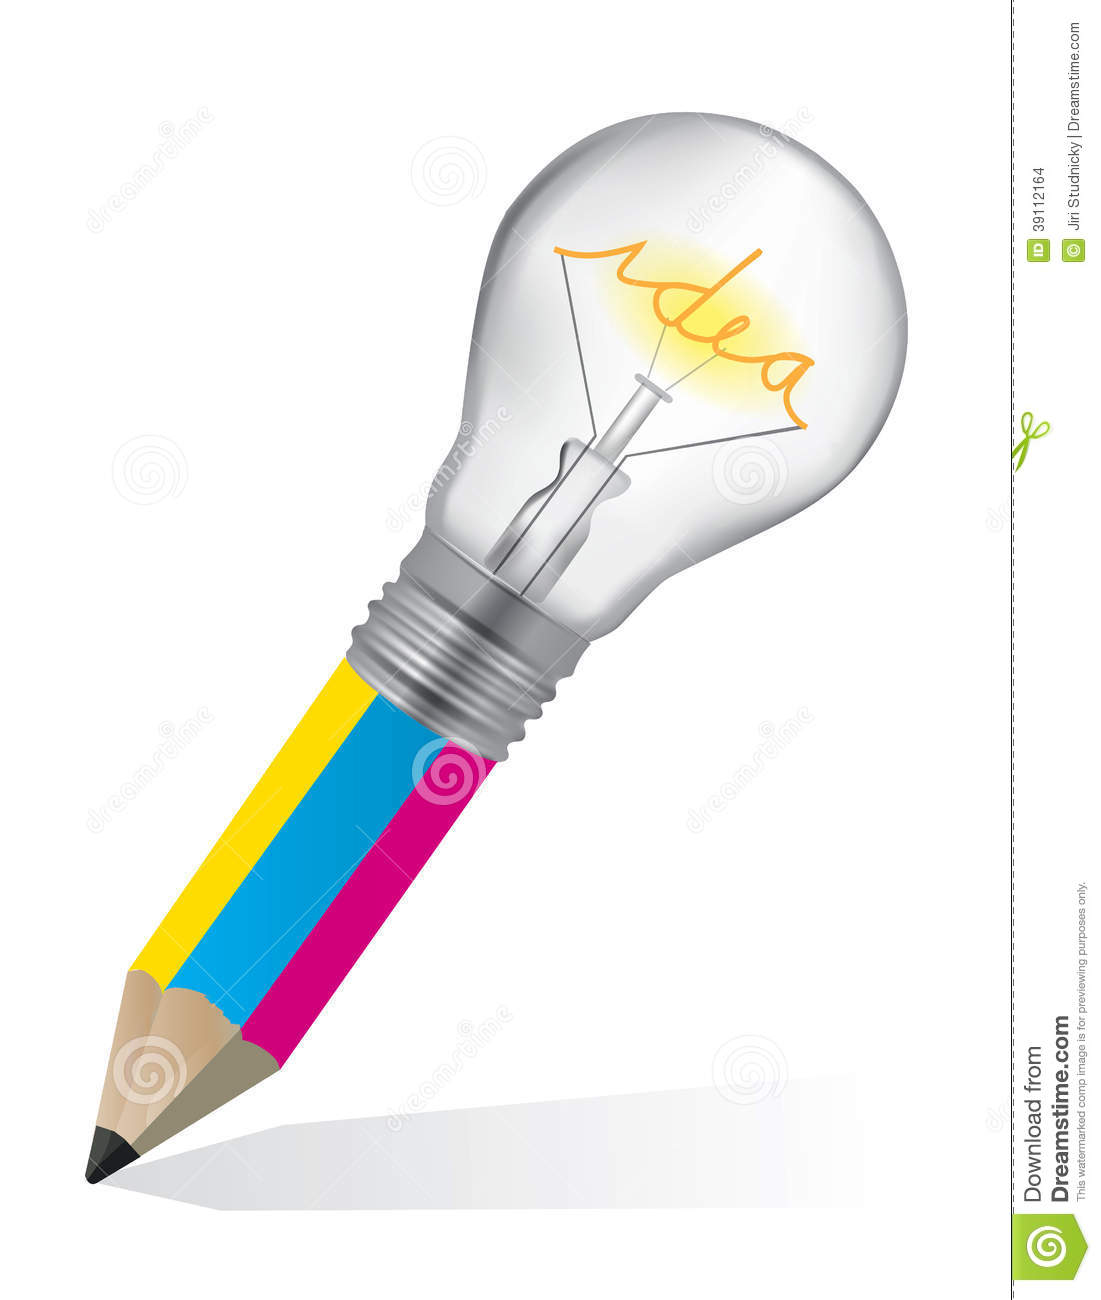 Pencil For Graphic Design Ideas Stock Vector Image 39112164